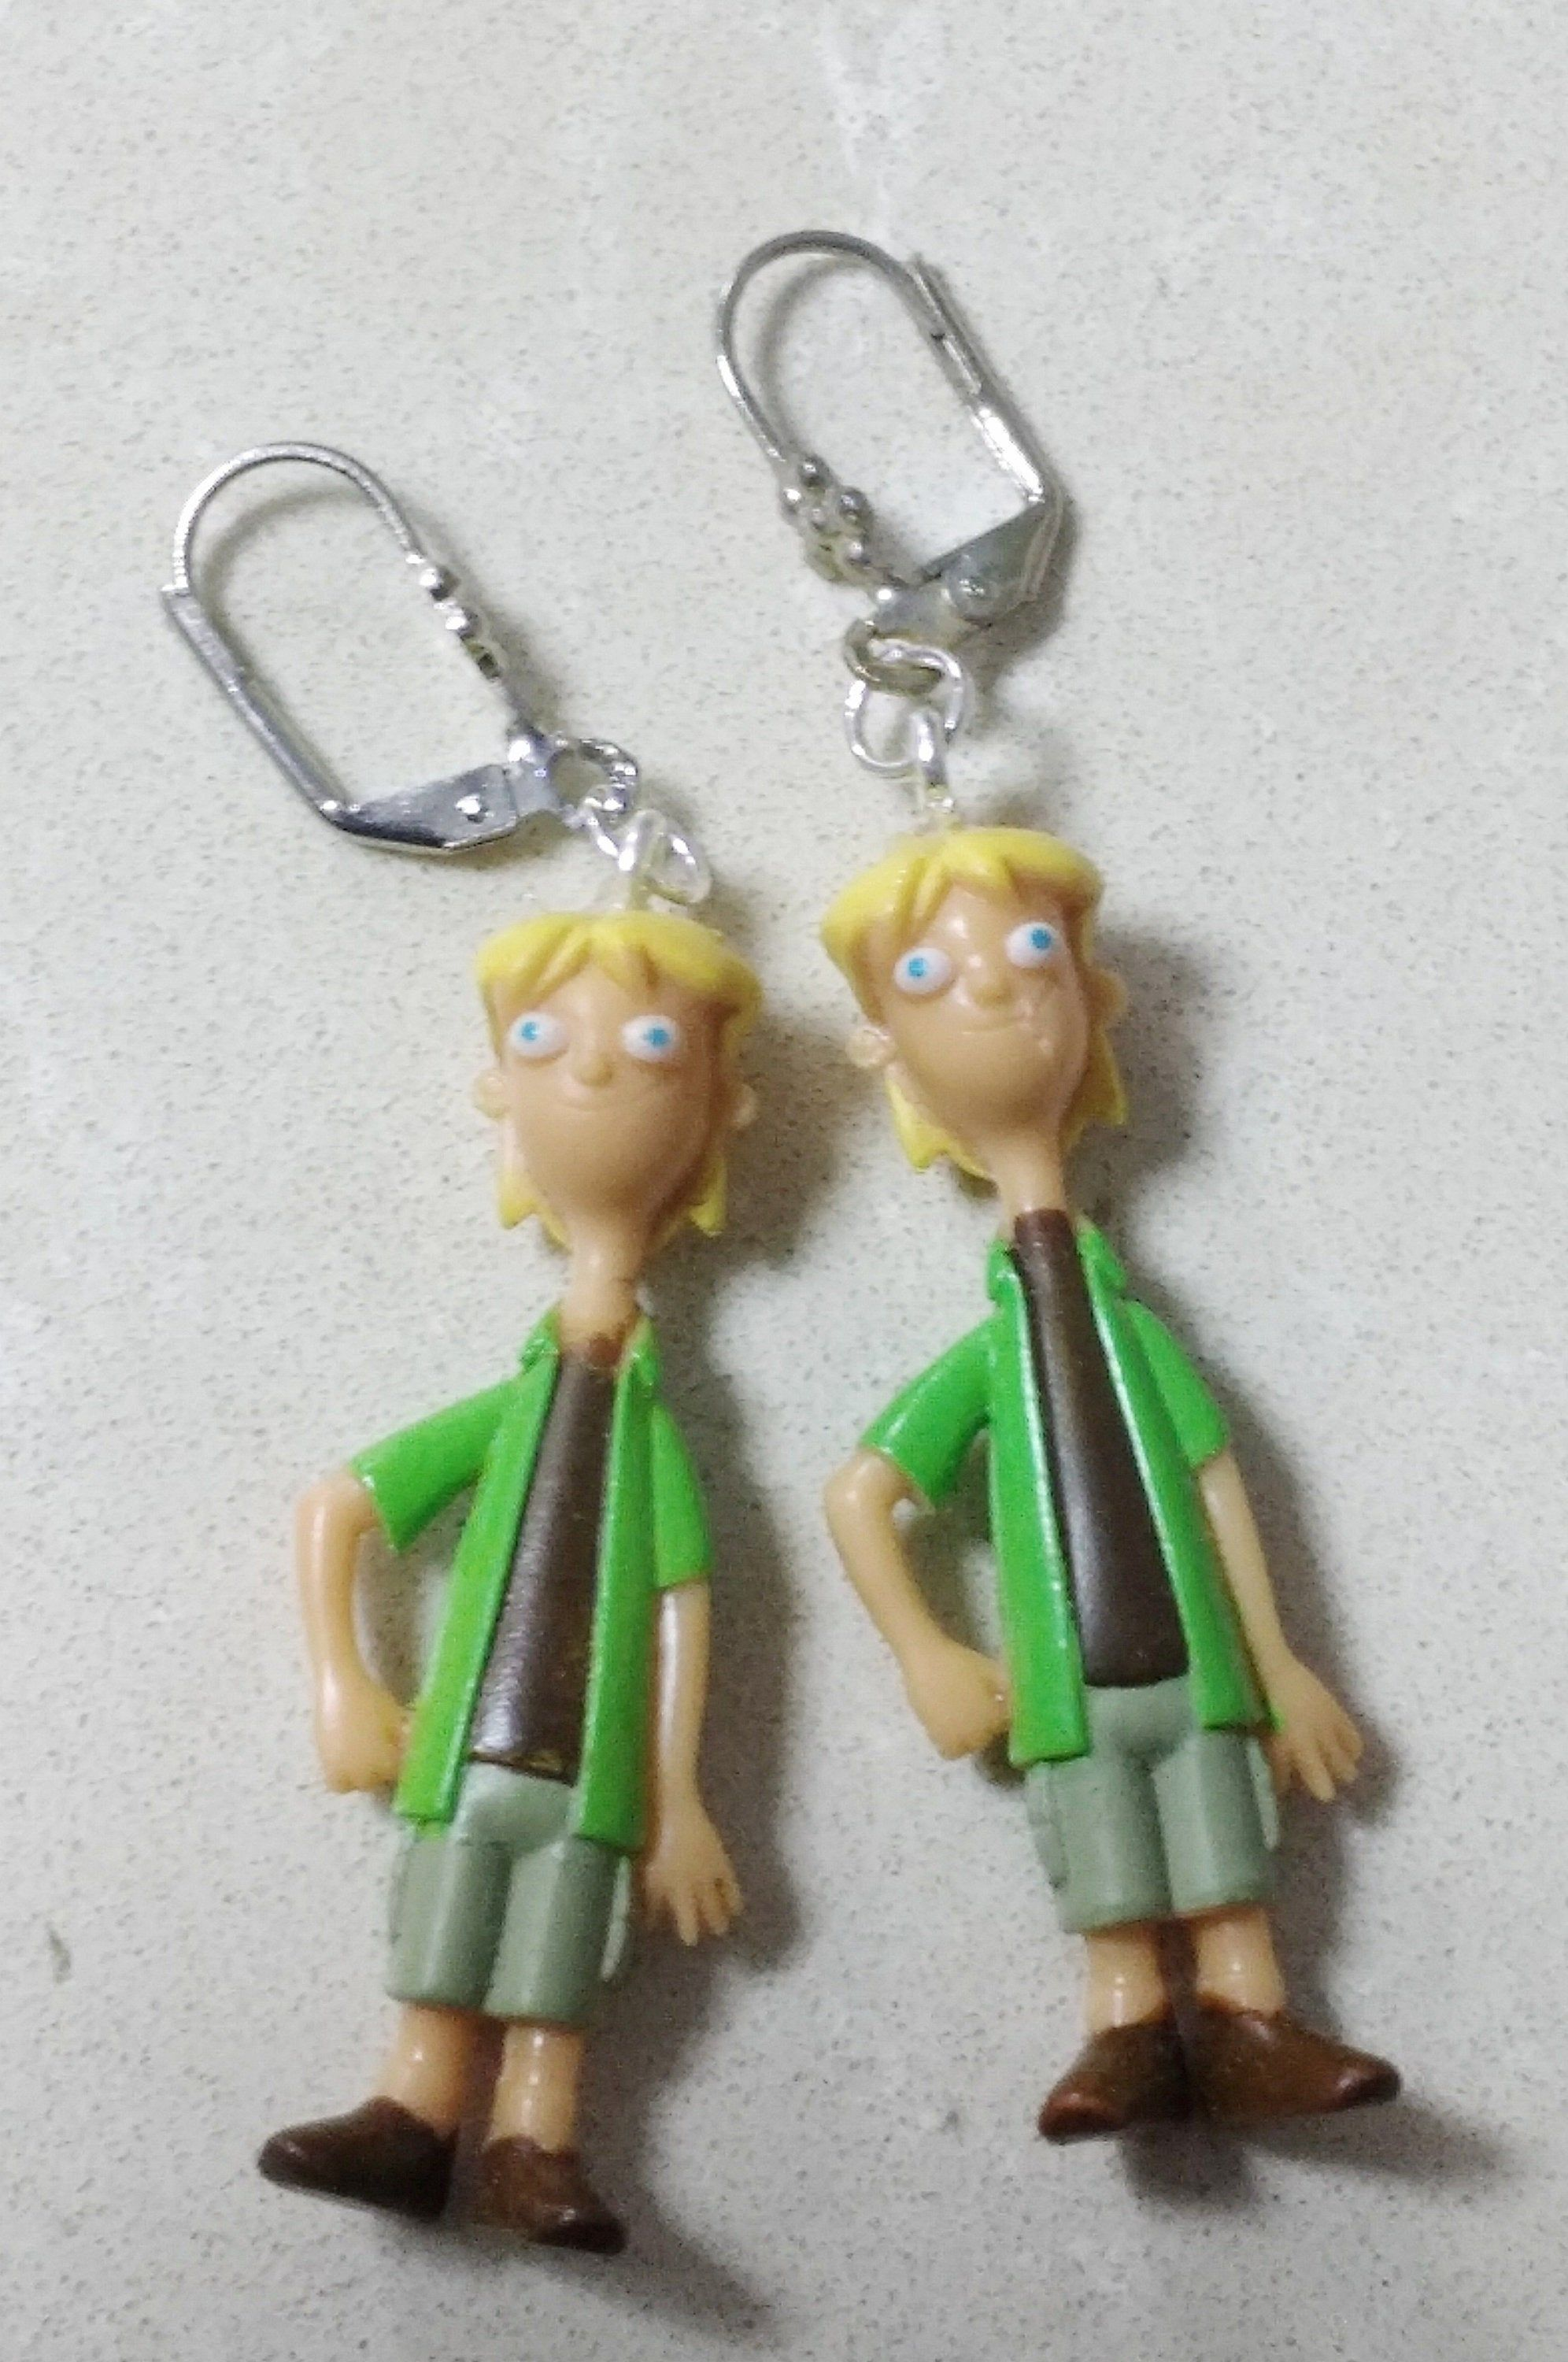 Phineas And Ferb 2020 Christmas Ornament SARITOOSH Silver earring Phineas and Ferb Characters Plastic